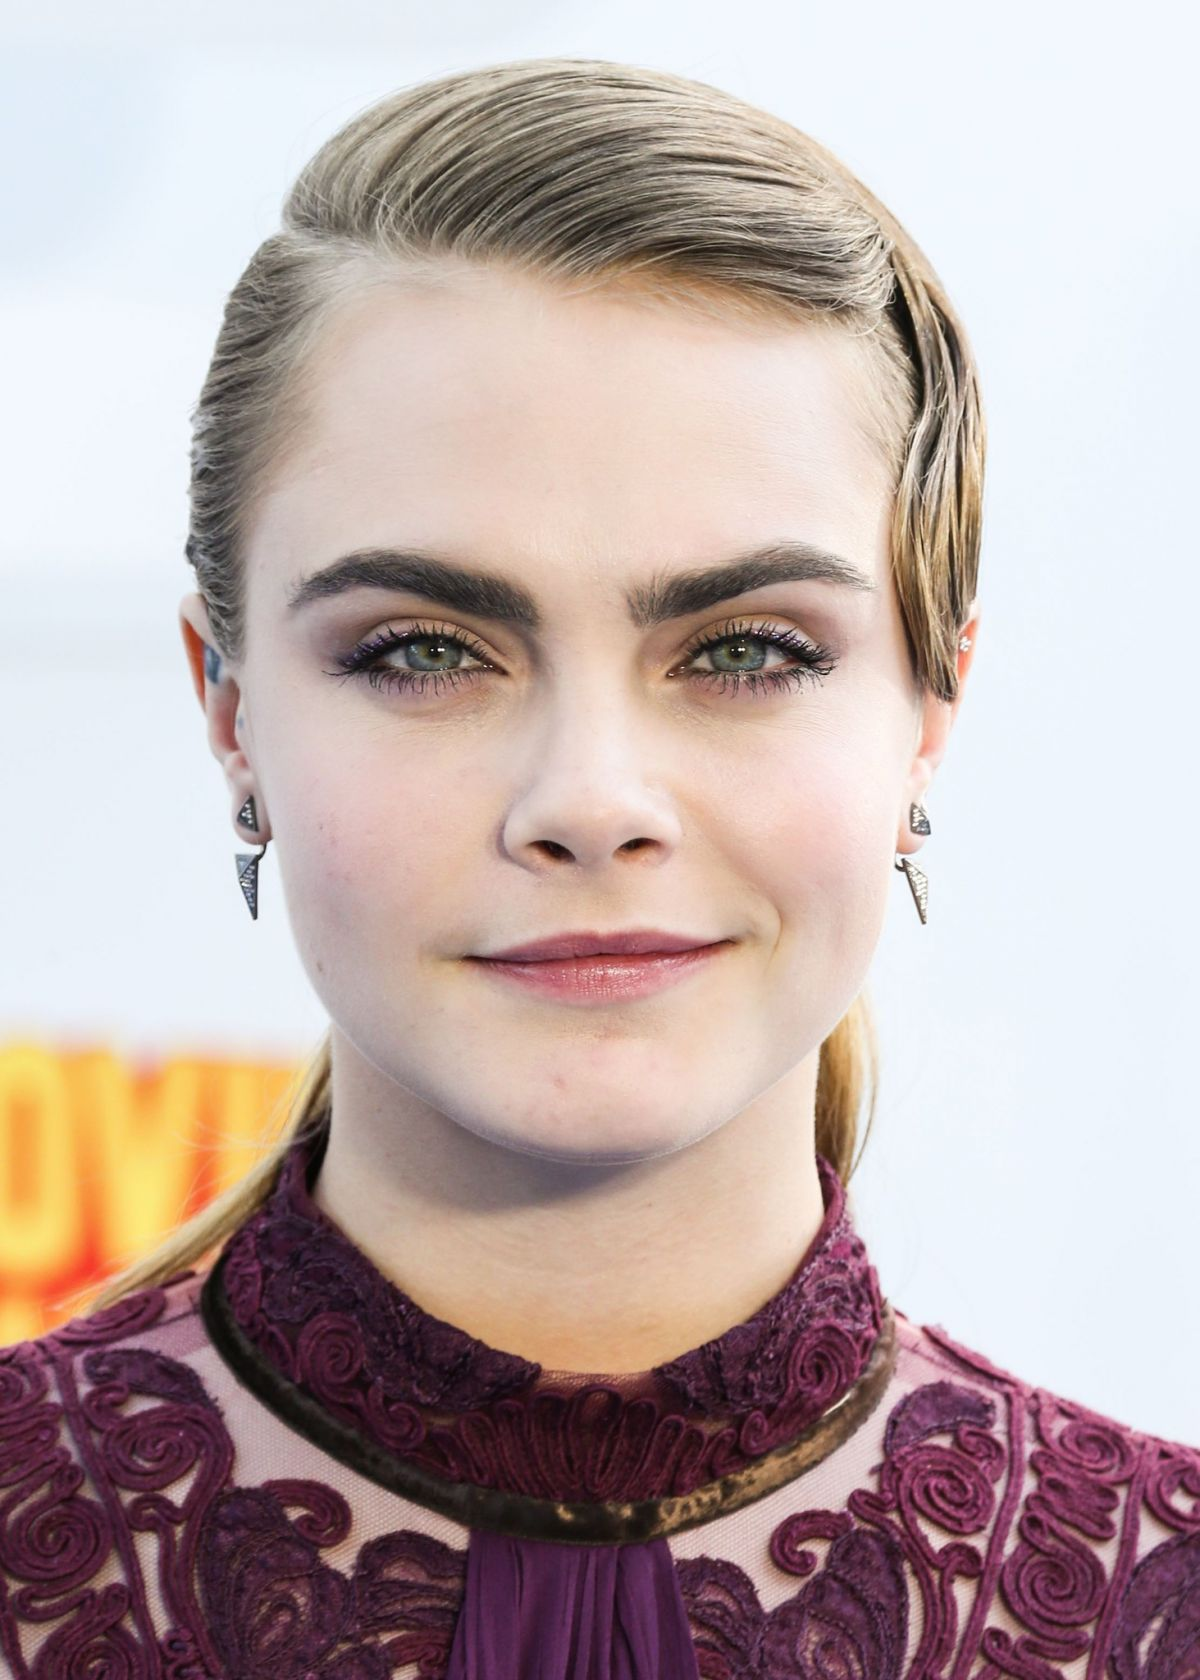 Cara Delevingne At 2015 MTV Movie Awards - Celebzz